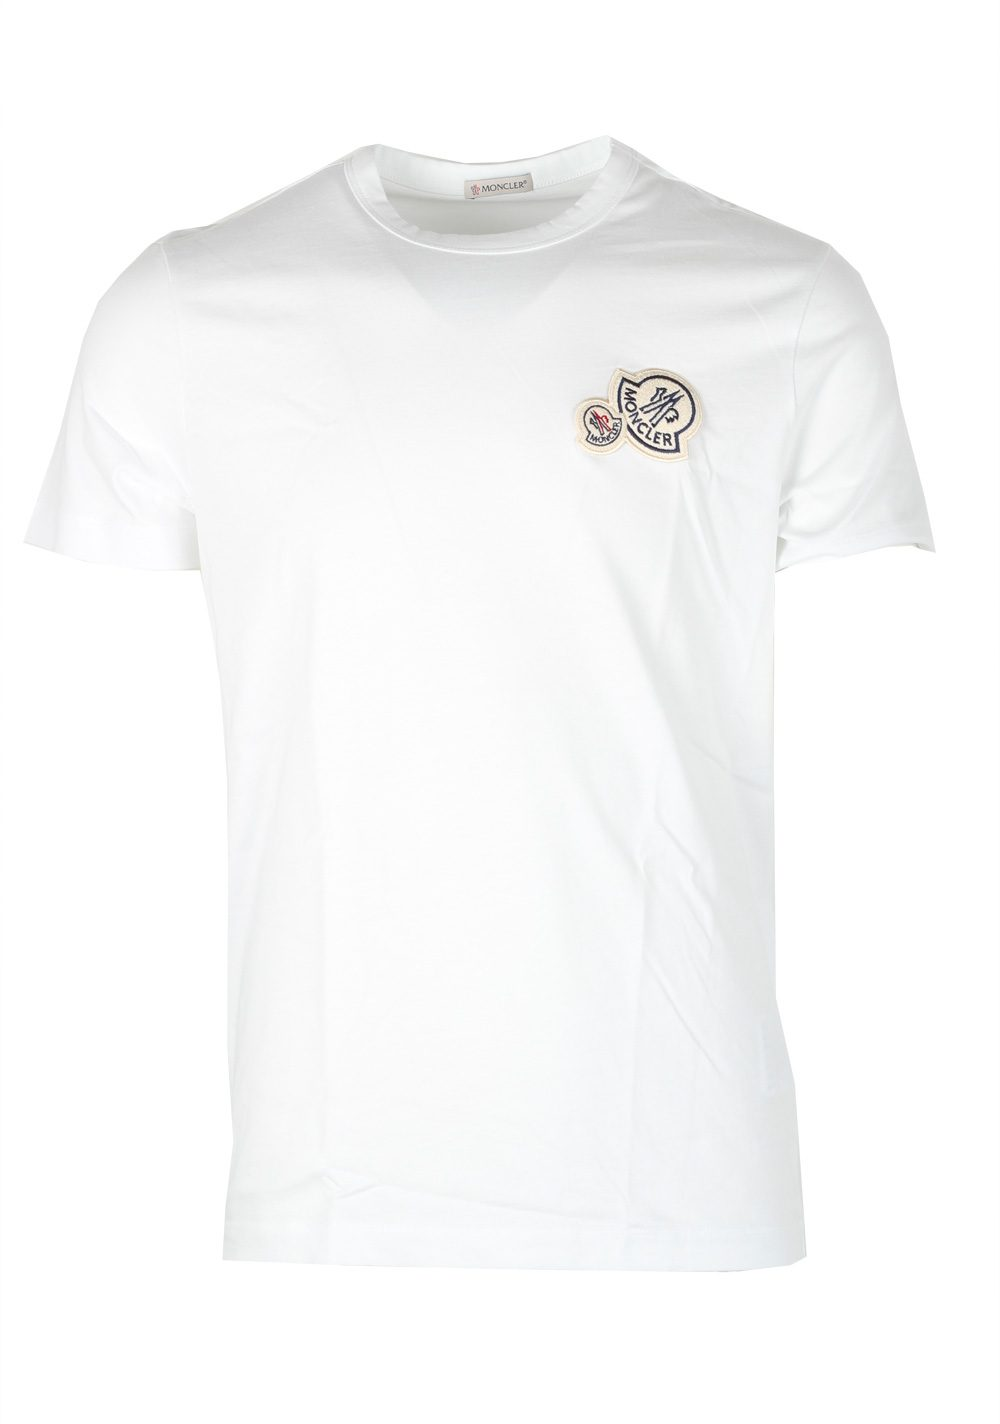 moncler white crew neck t shirt